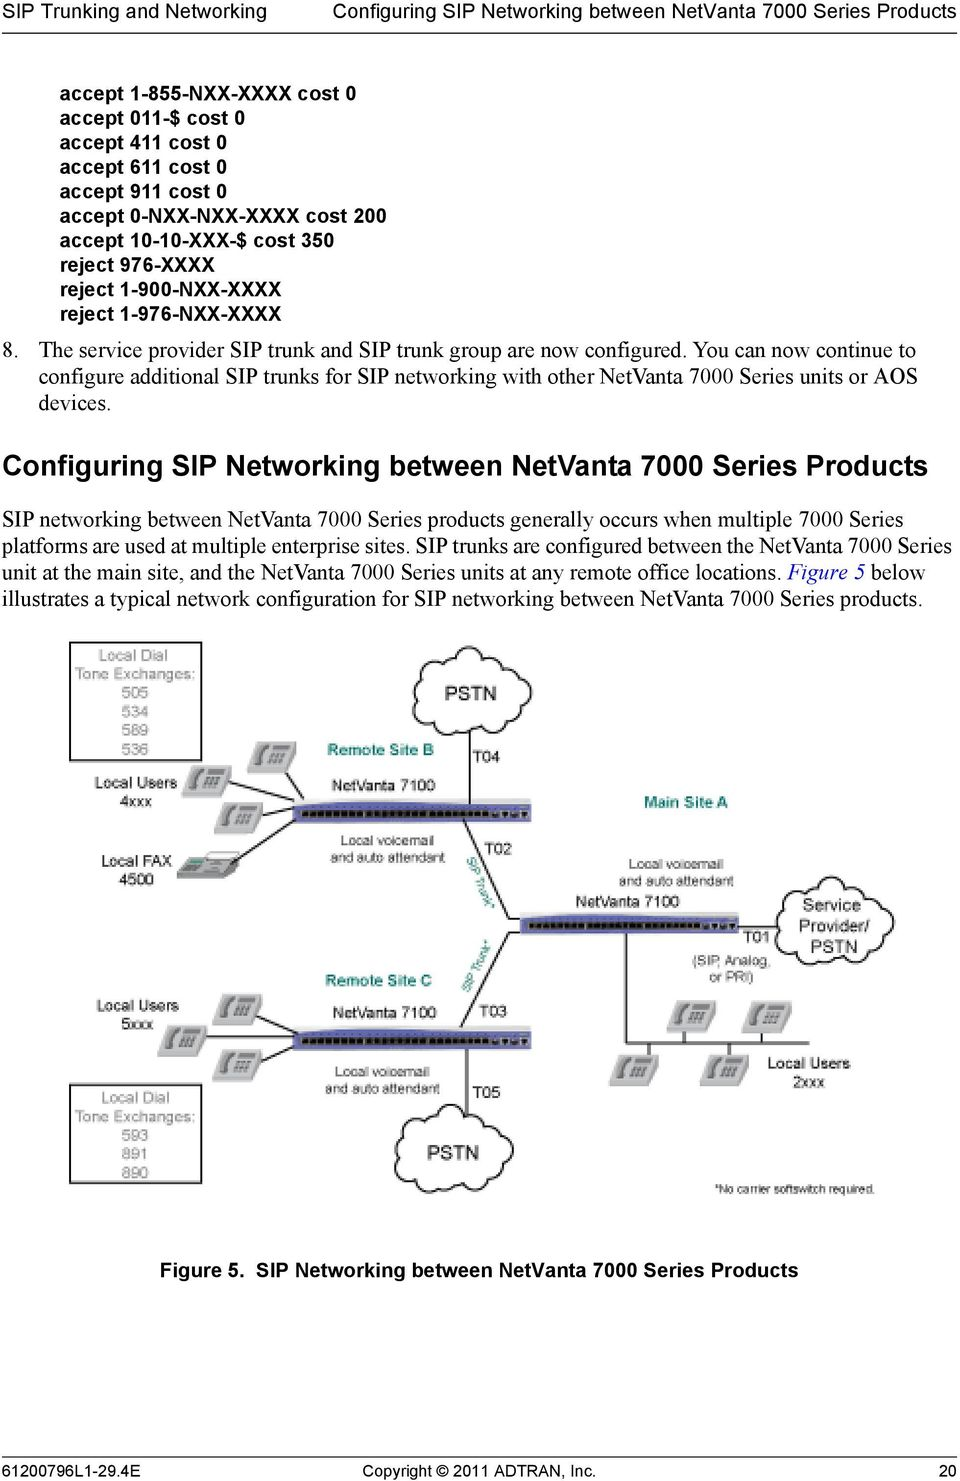 You can now continue to configure additional SIP trunks for SIP networking with other NetVanta 7000 Series units or AOS devices.